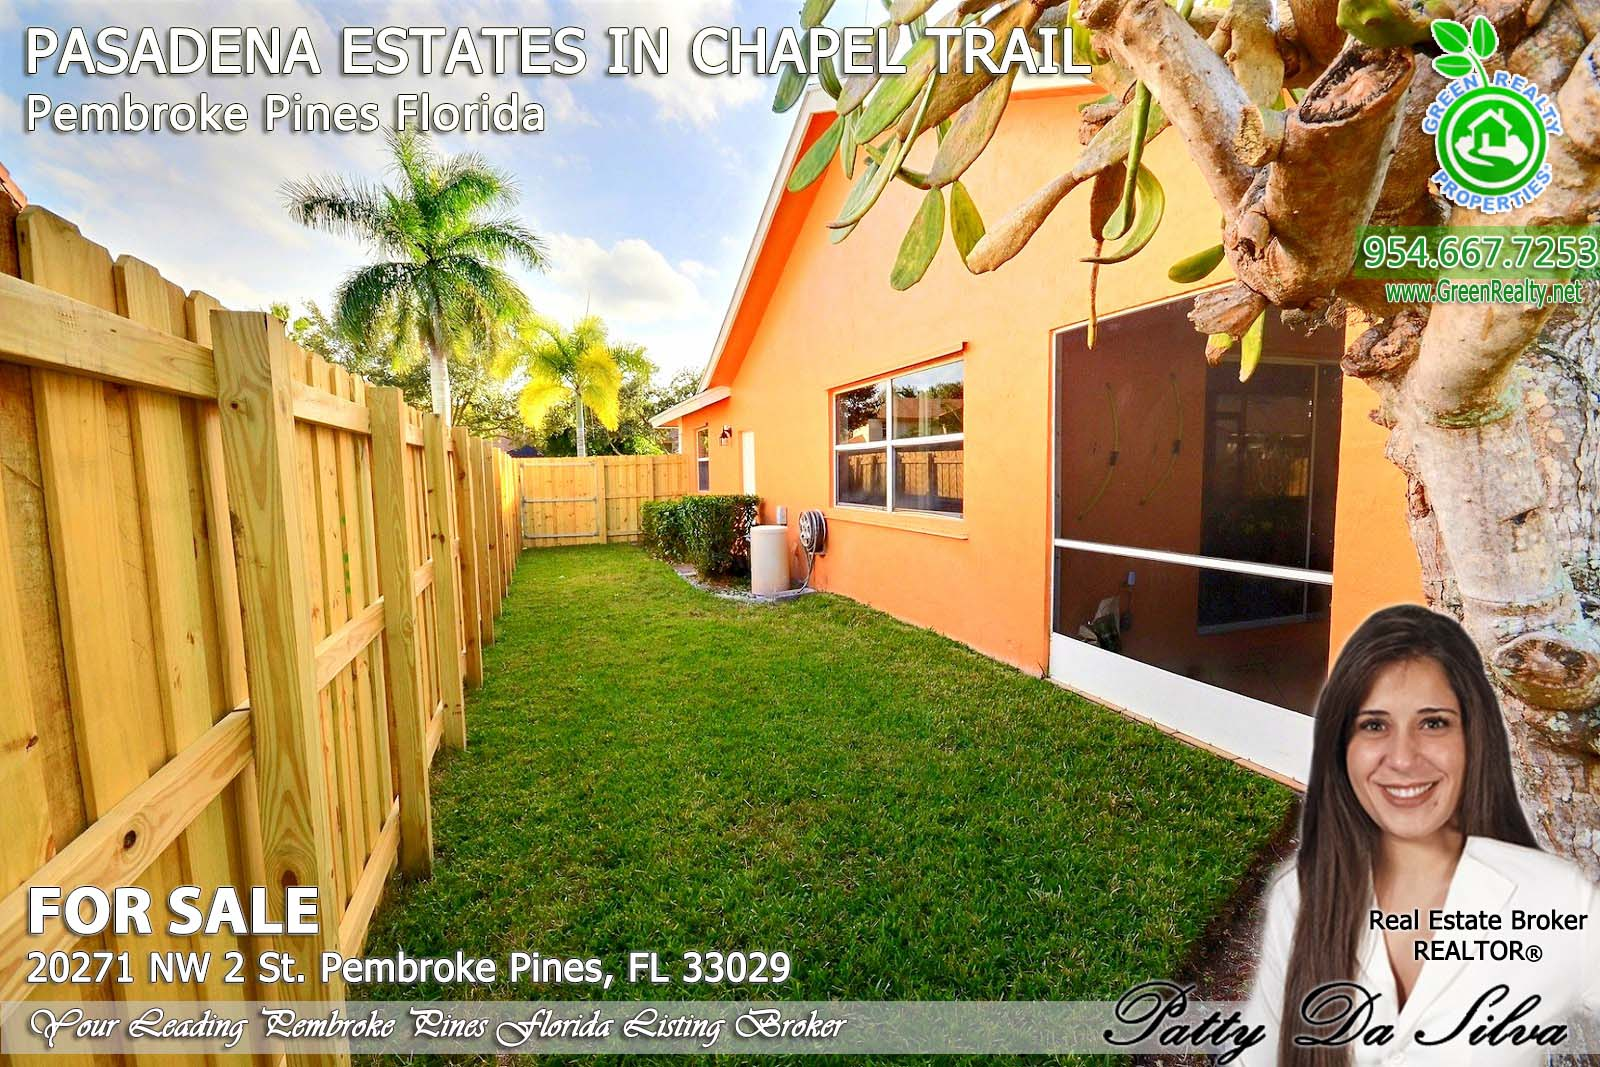 Pasadena Estates of Chapel Trail - Pembroke Pines FL homes for sale